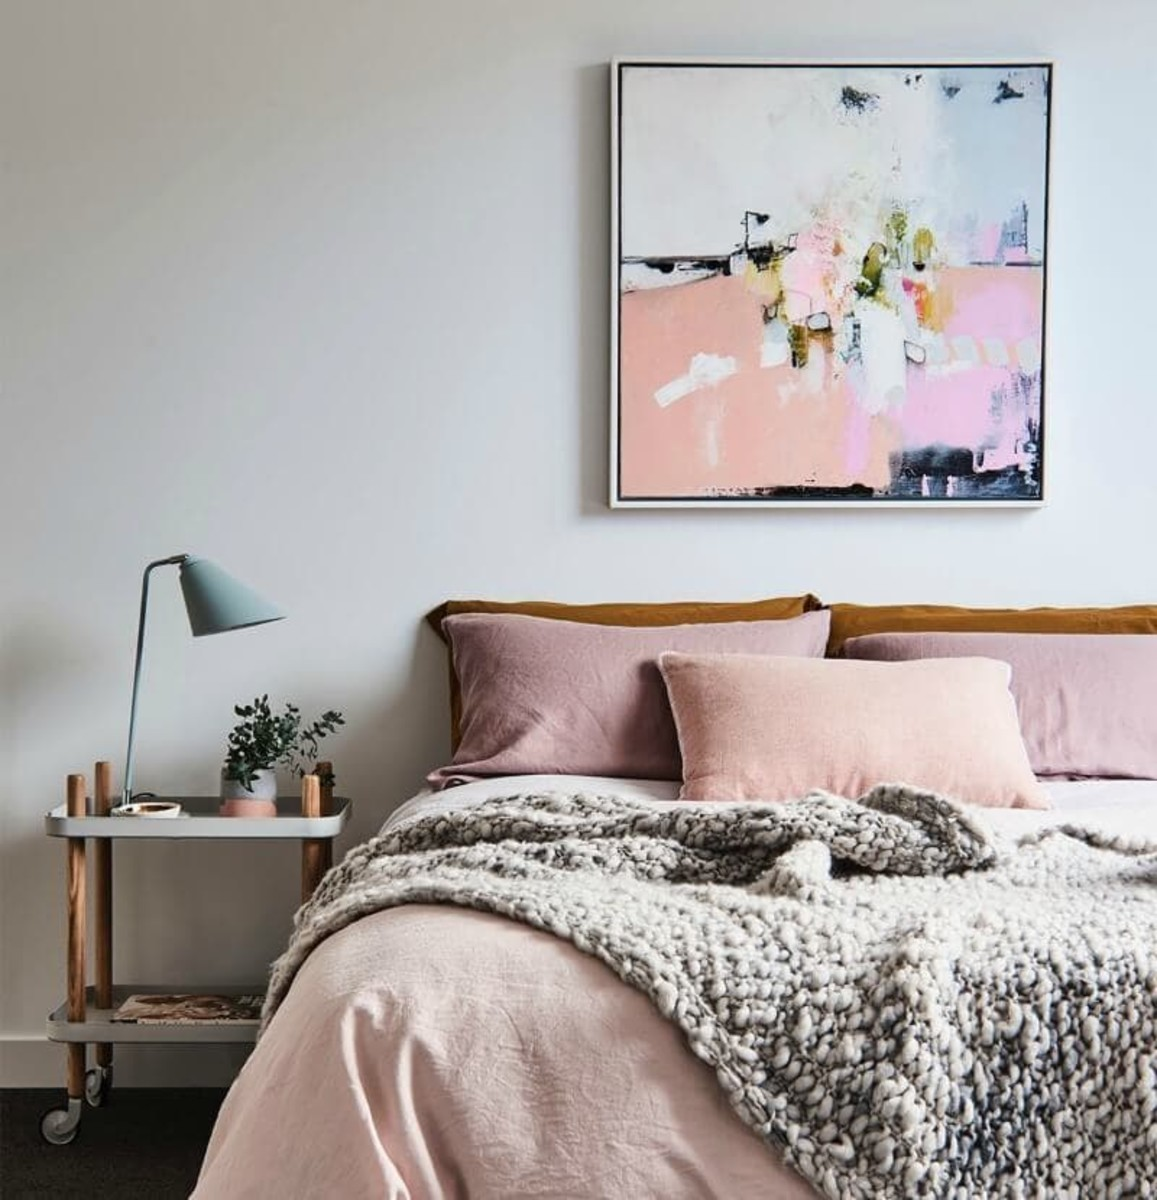 Coordinating colors within the artwork creates a compatible look and soothing feel.